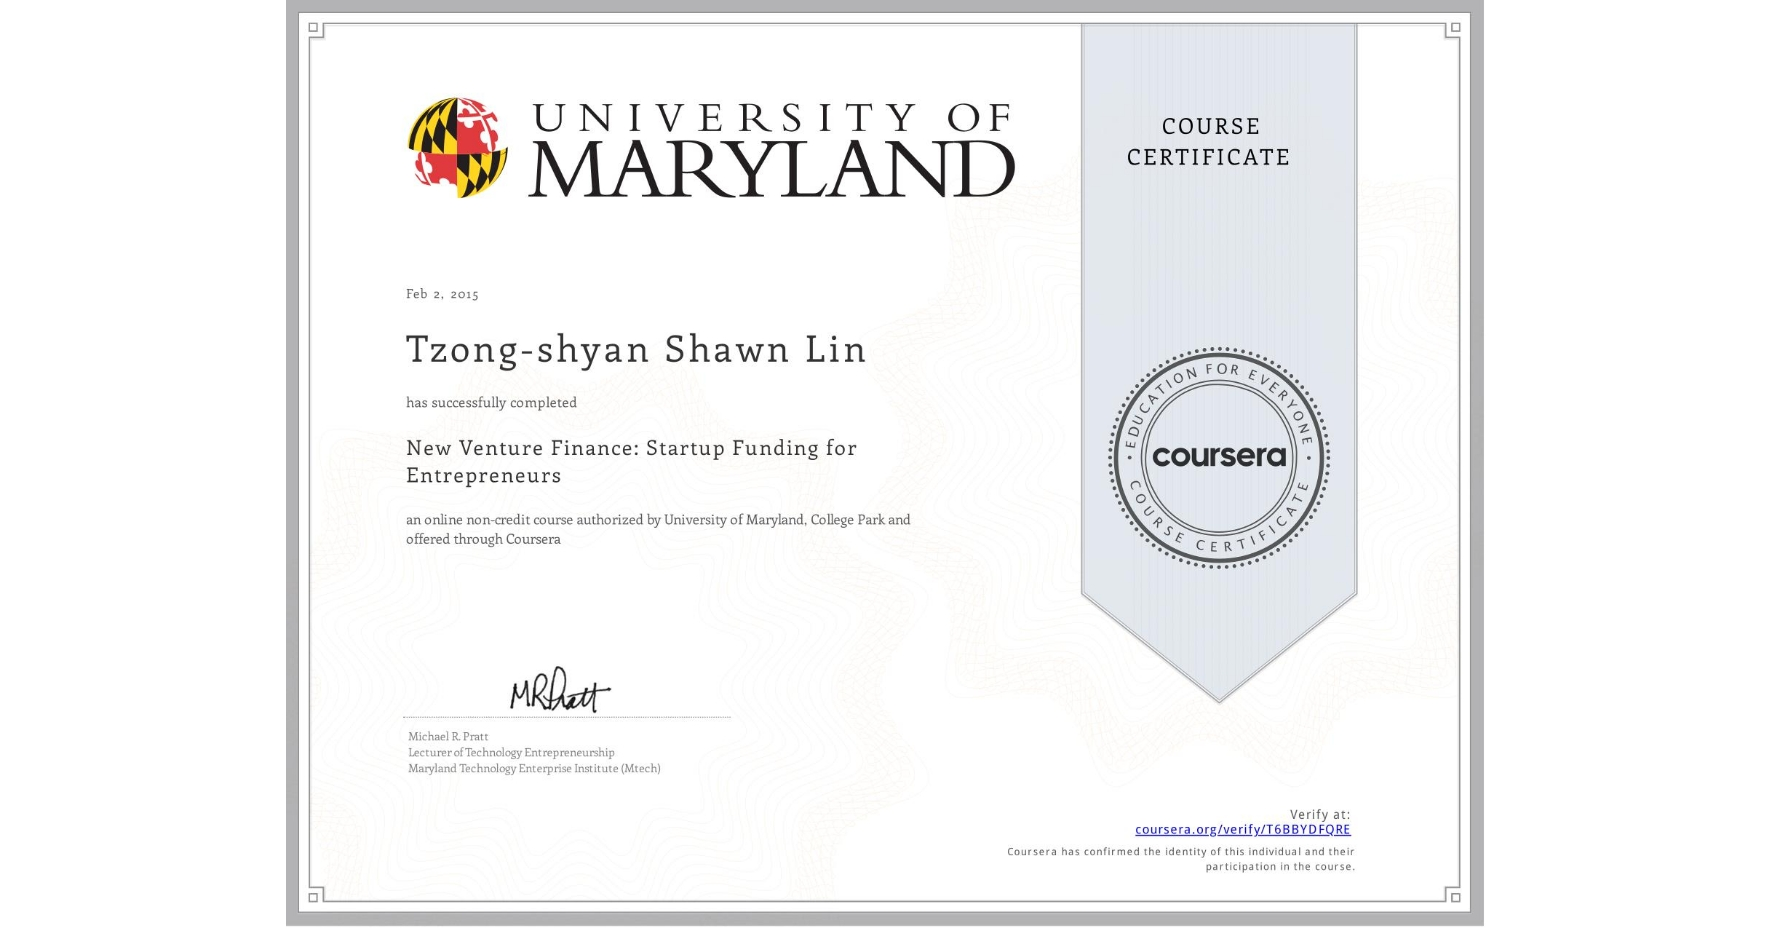 View certificate for Tzong-shyan Shawn Lin, New Venture Finance: Startup Funding for Entrepreneurs, an online non-credit course authorized by University of Maryland, College Park and offered through Coursera